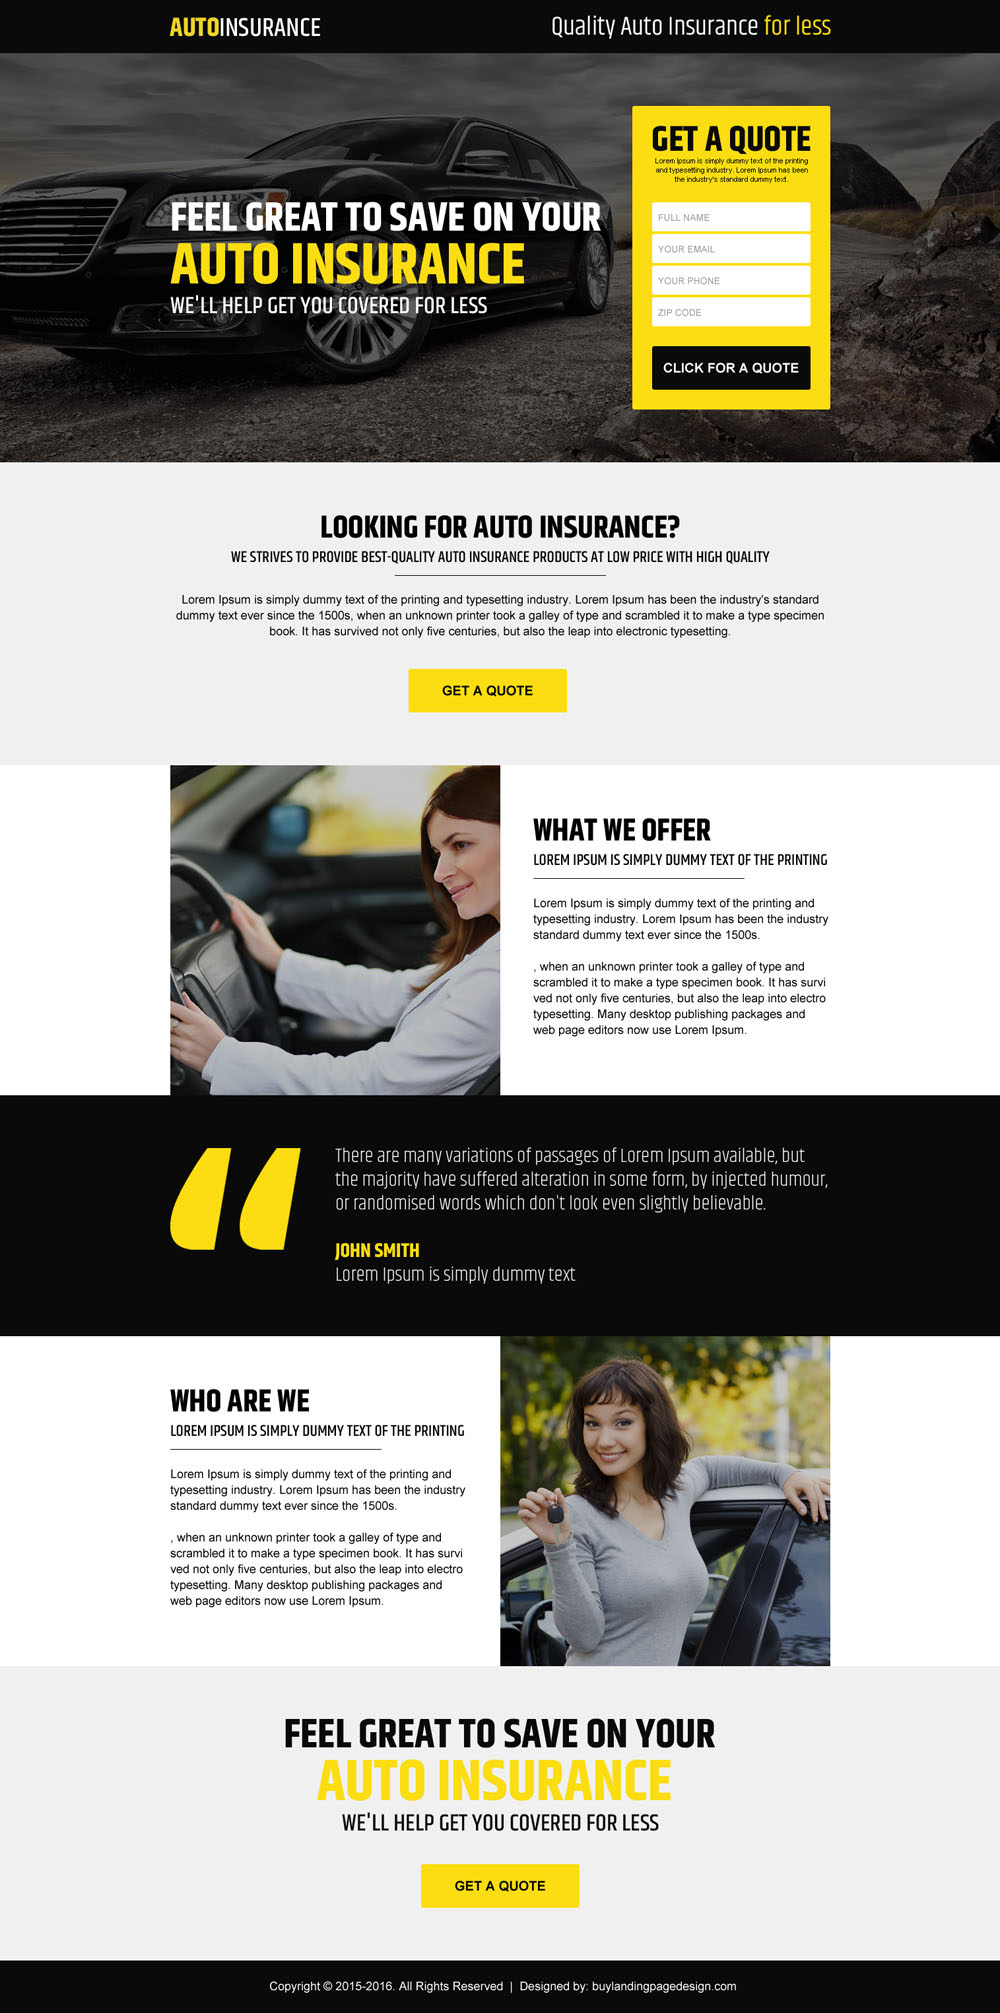 quality-auto-insurance-free-quote-for-less-money-lead-gen-landing-page-design-041